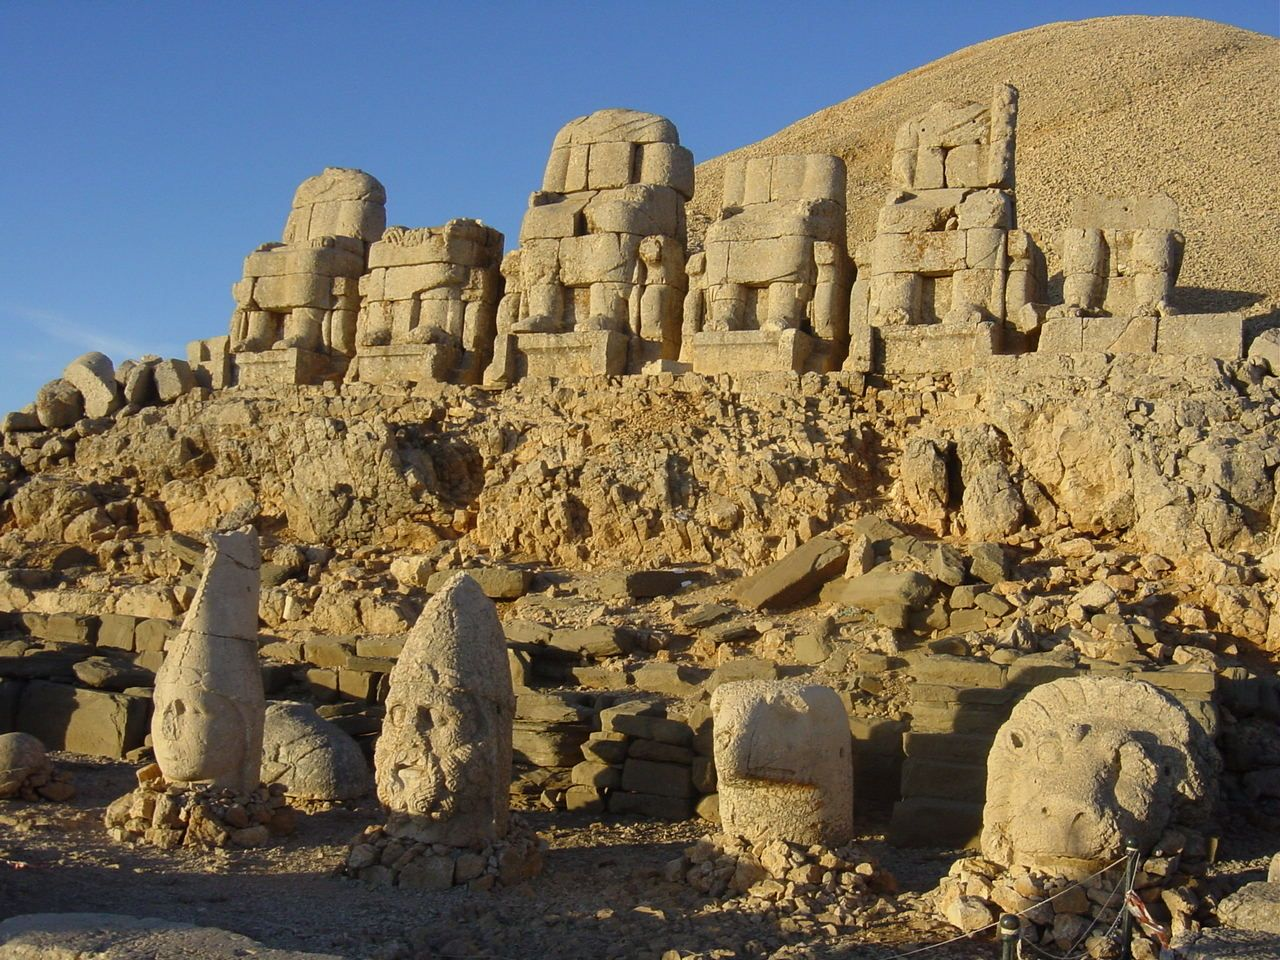 Mount Nemrut (2,134 m high), Turkey. The mountain lies 40 km north of Kahta, near Adıyaman. In 62 BC, King Antiochus I Theos of Commagene built on the mountain top a tomb-sanctuary flanked by huge statues 8–9 m high. These statues were once seated, with names of each god inscribed on them. The heads of the statues have at some stage been removed from their bodies, and they are now scattered throughout the site.